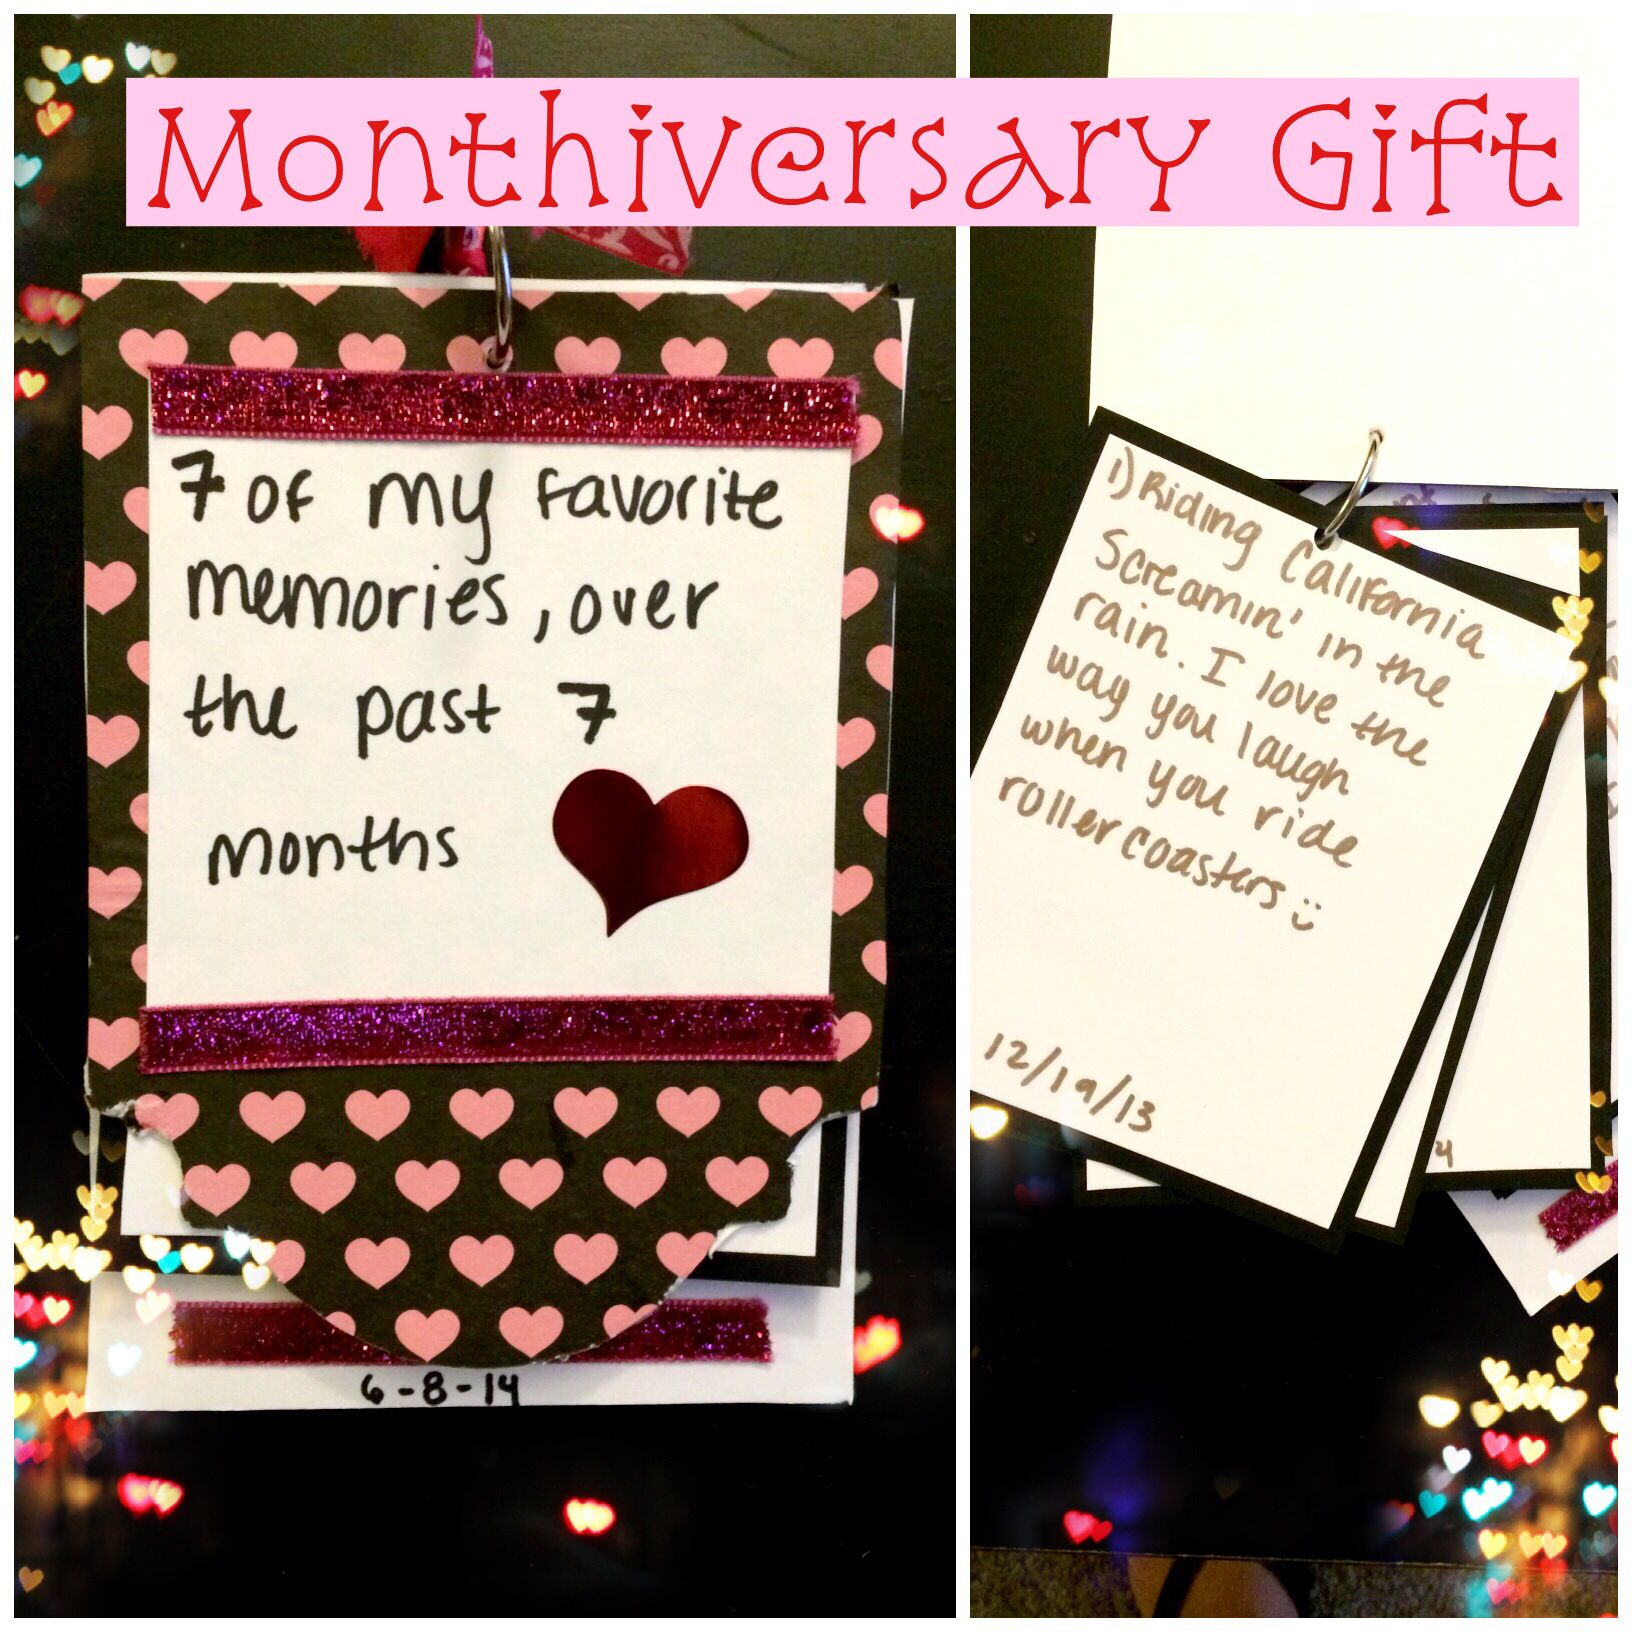 Monthiversary Gift Anniversary gift ideas for him